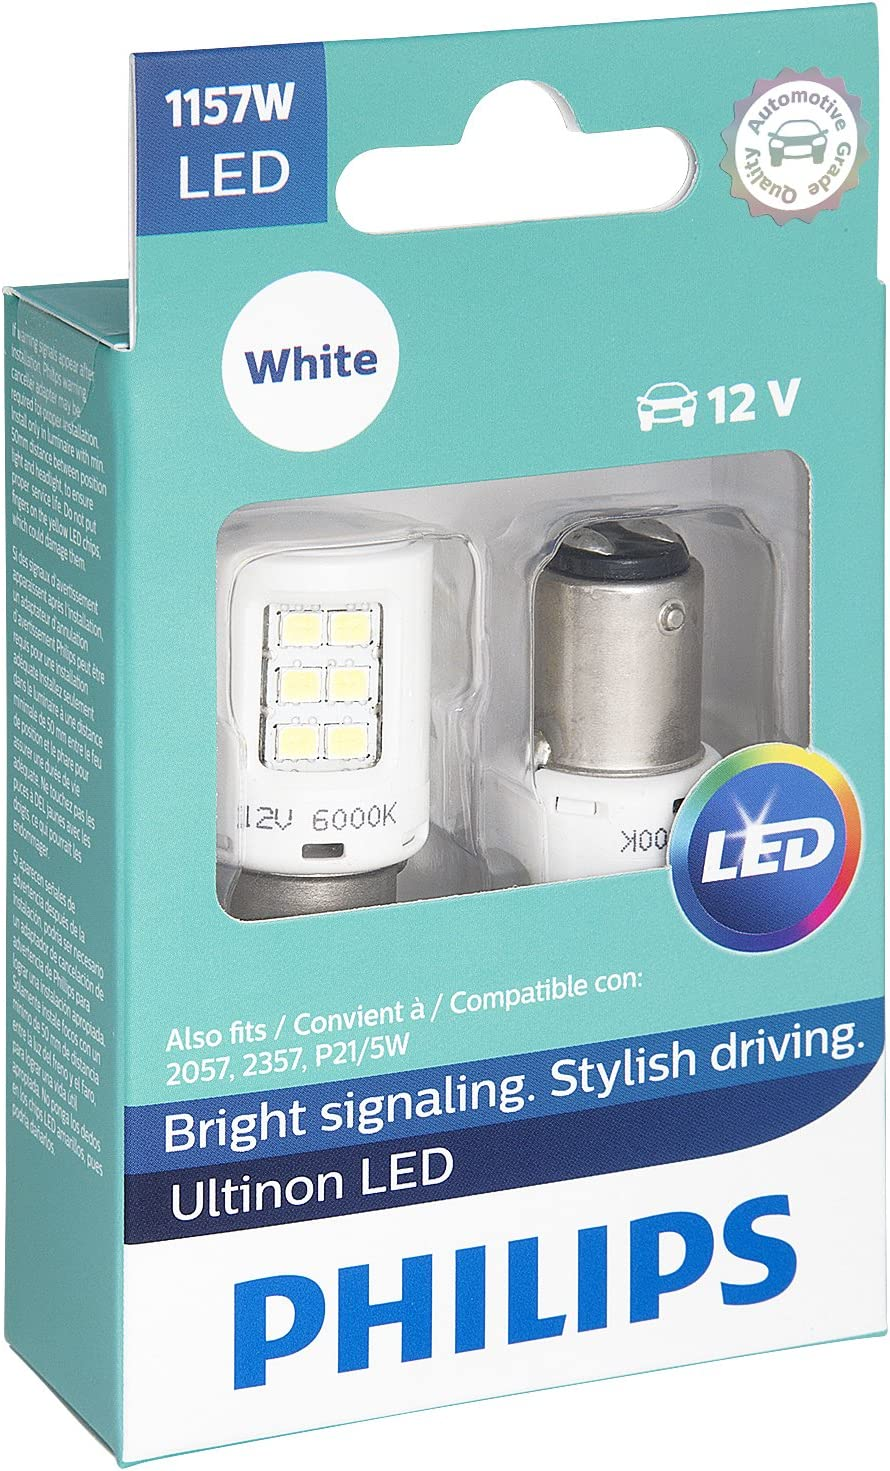 1157 Philips ULTINON Reverse Backing Signal LED Bulbs WHITE 1157ULWX2 Pack of 2